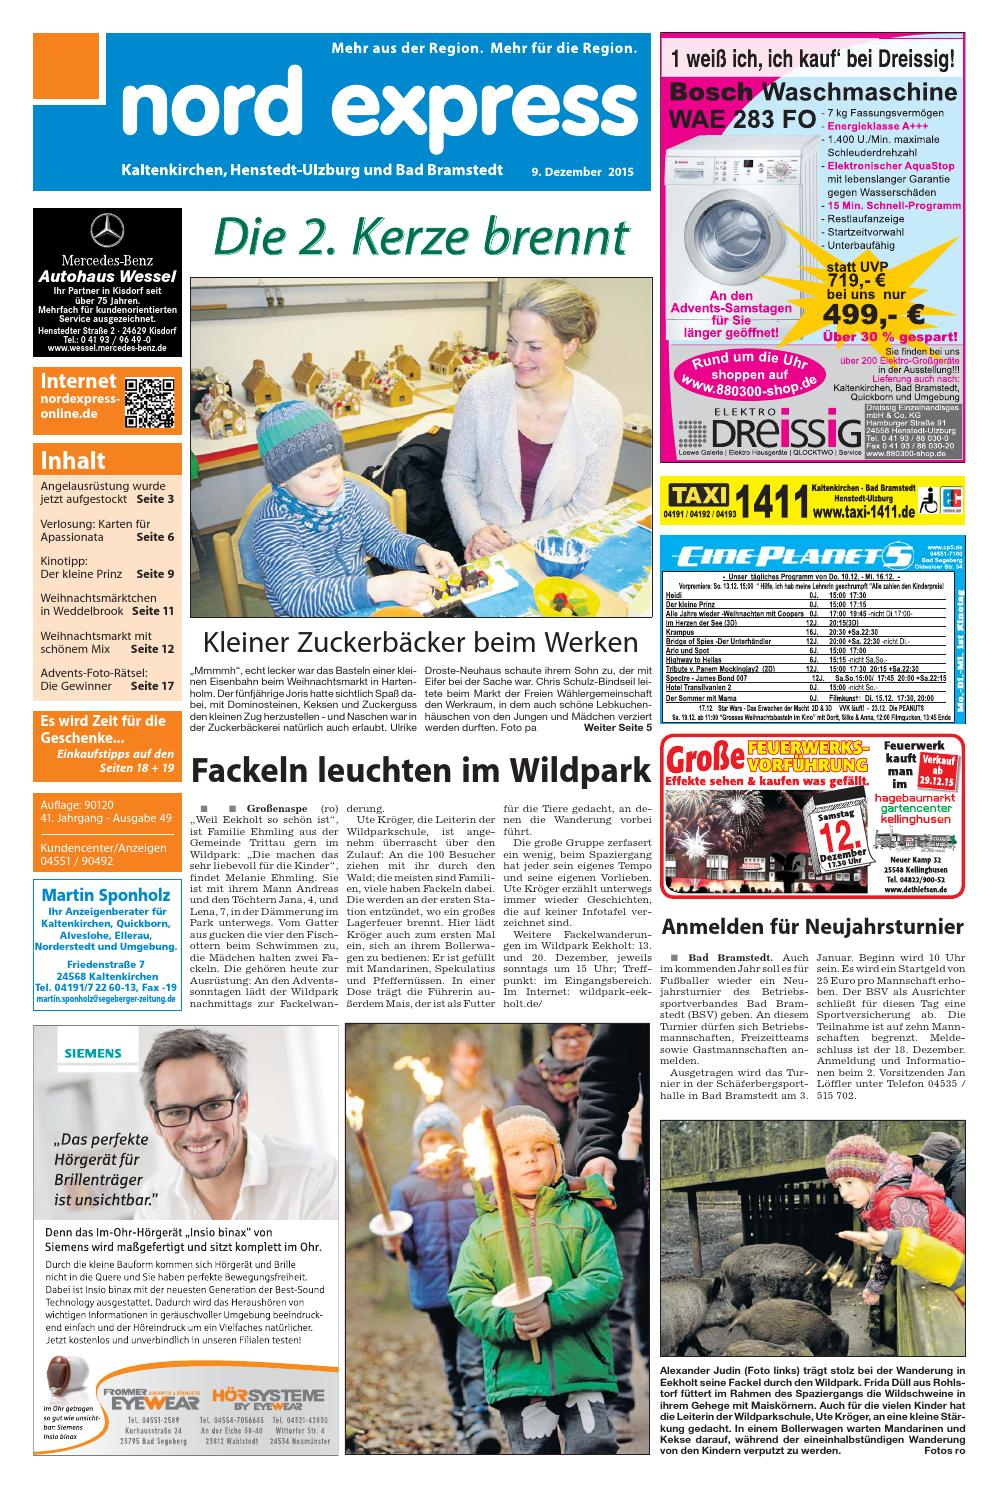 Waschmaschine Gebraucht Quickborn Nord Express West By Nordexpress Online De Issuu